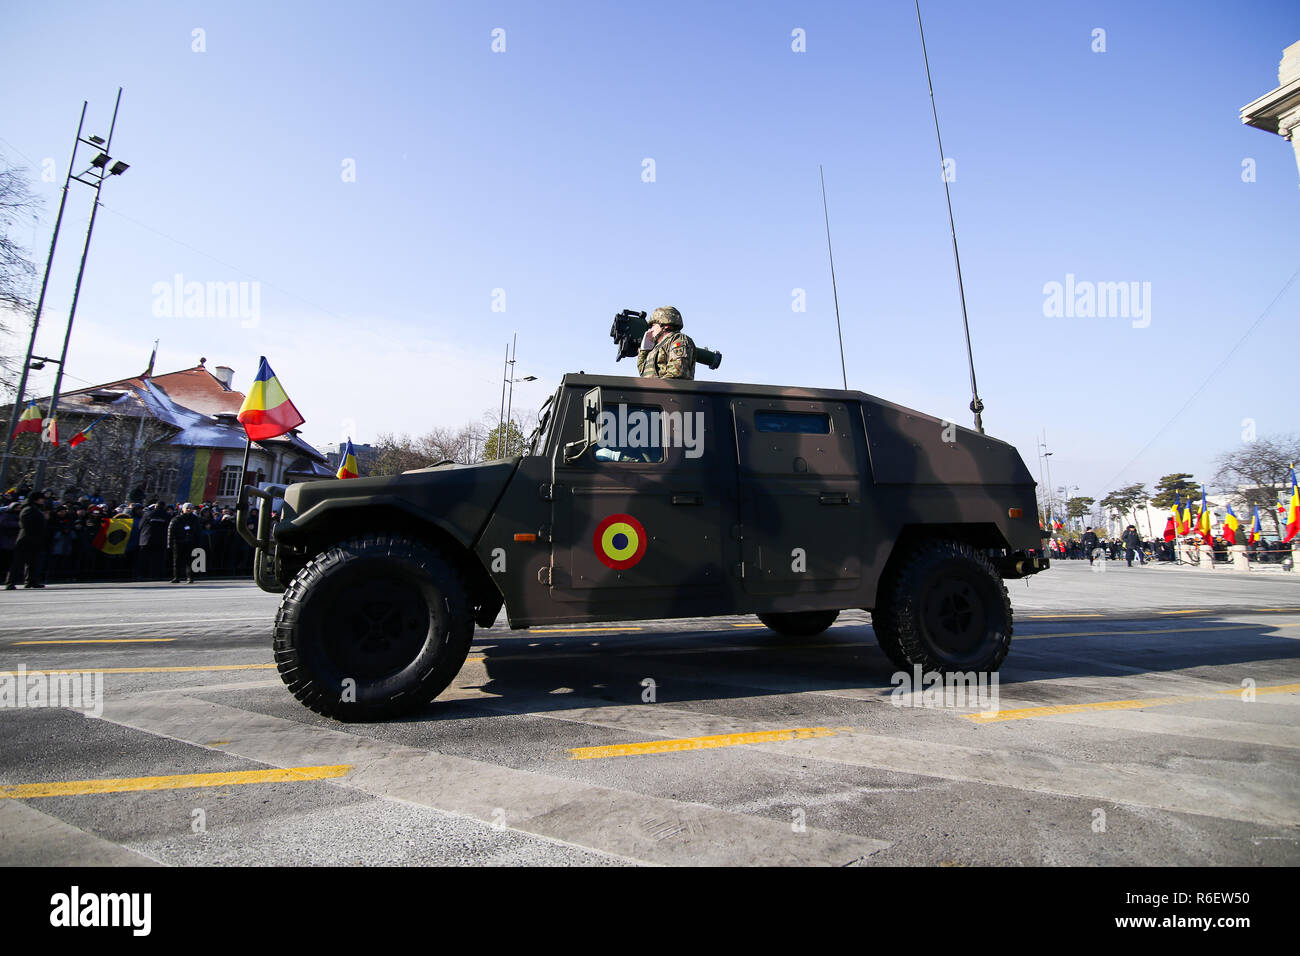 BUCHAREST, ROMANIA - December 1, 2018: URO VAMTAC combat armored vehicle, at Romanian National Day military parade passes under the Arch of Triumph - Stock Image